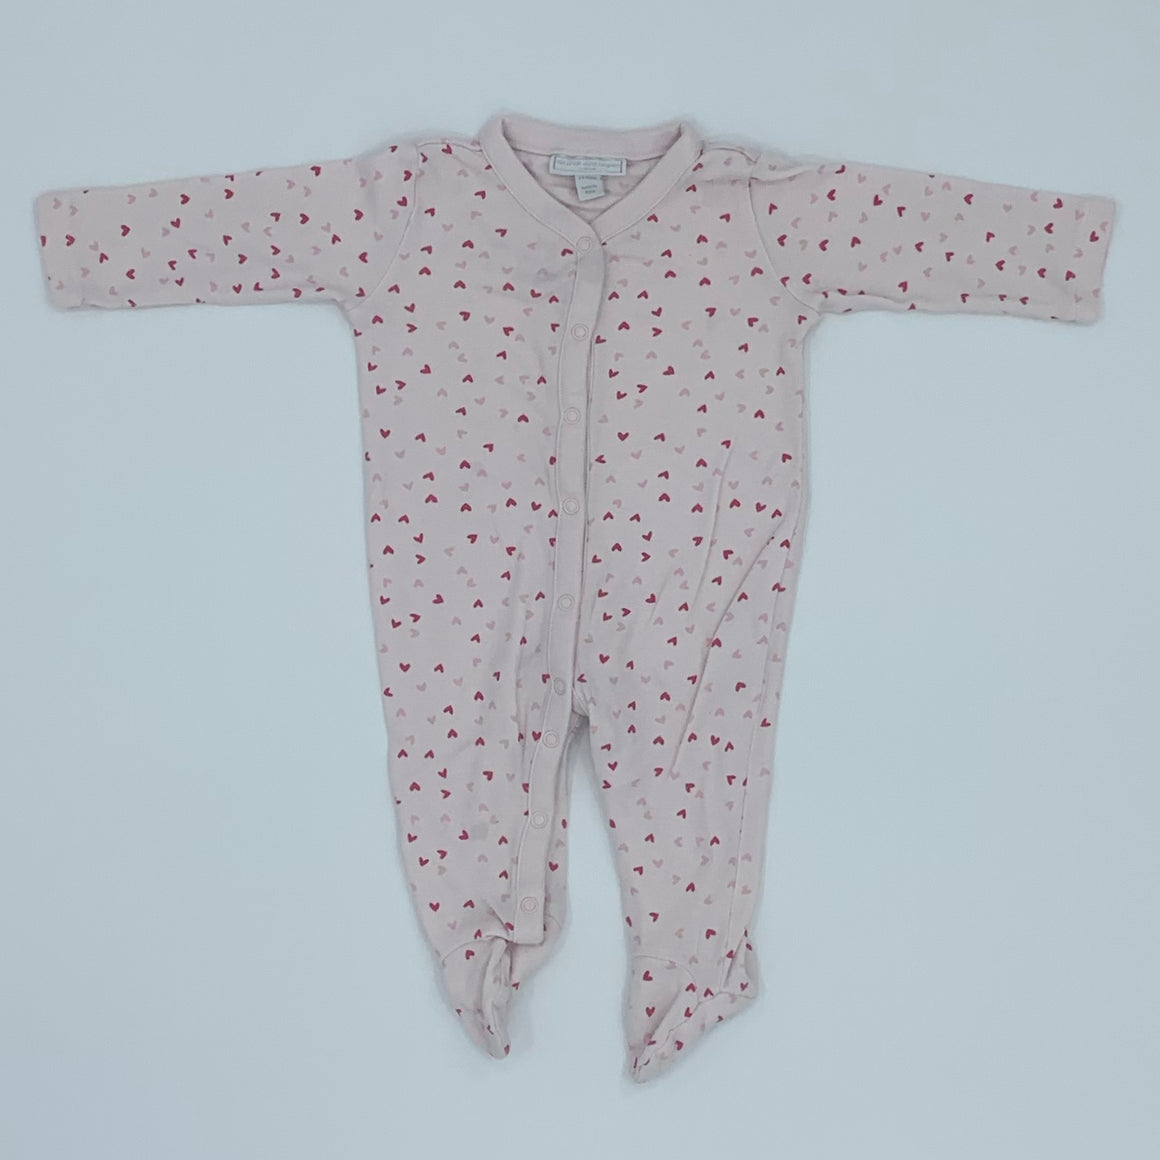 Gently Worn The White Company pink heart sleepsuit size 3-6 months